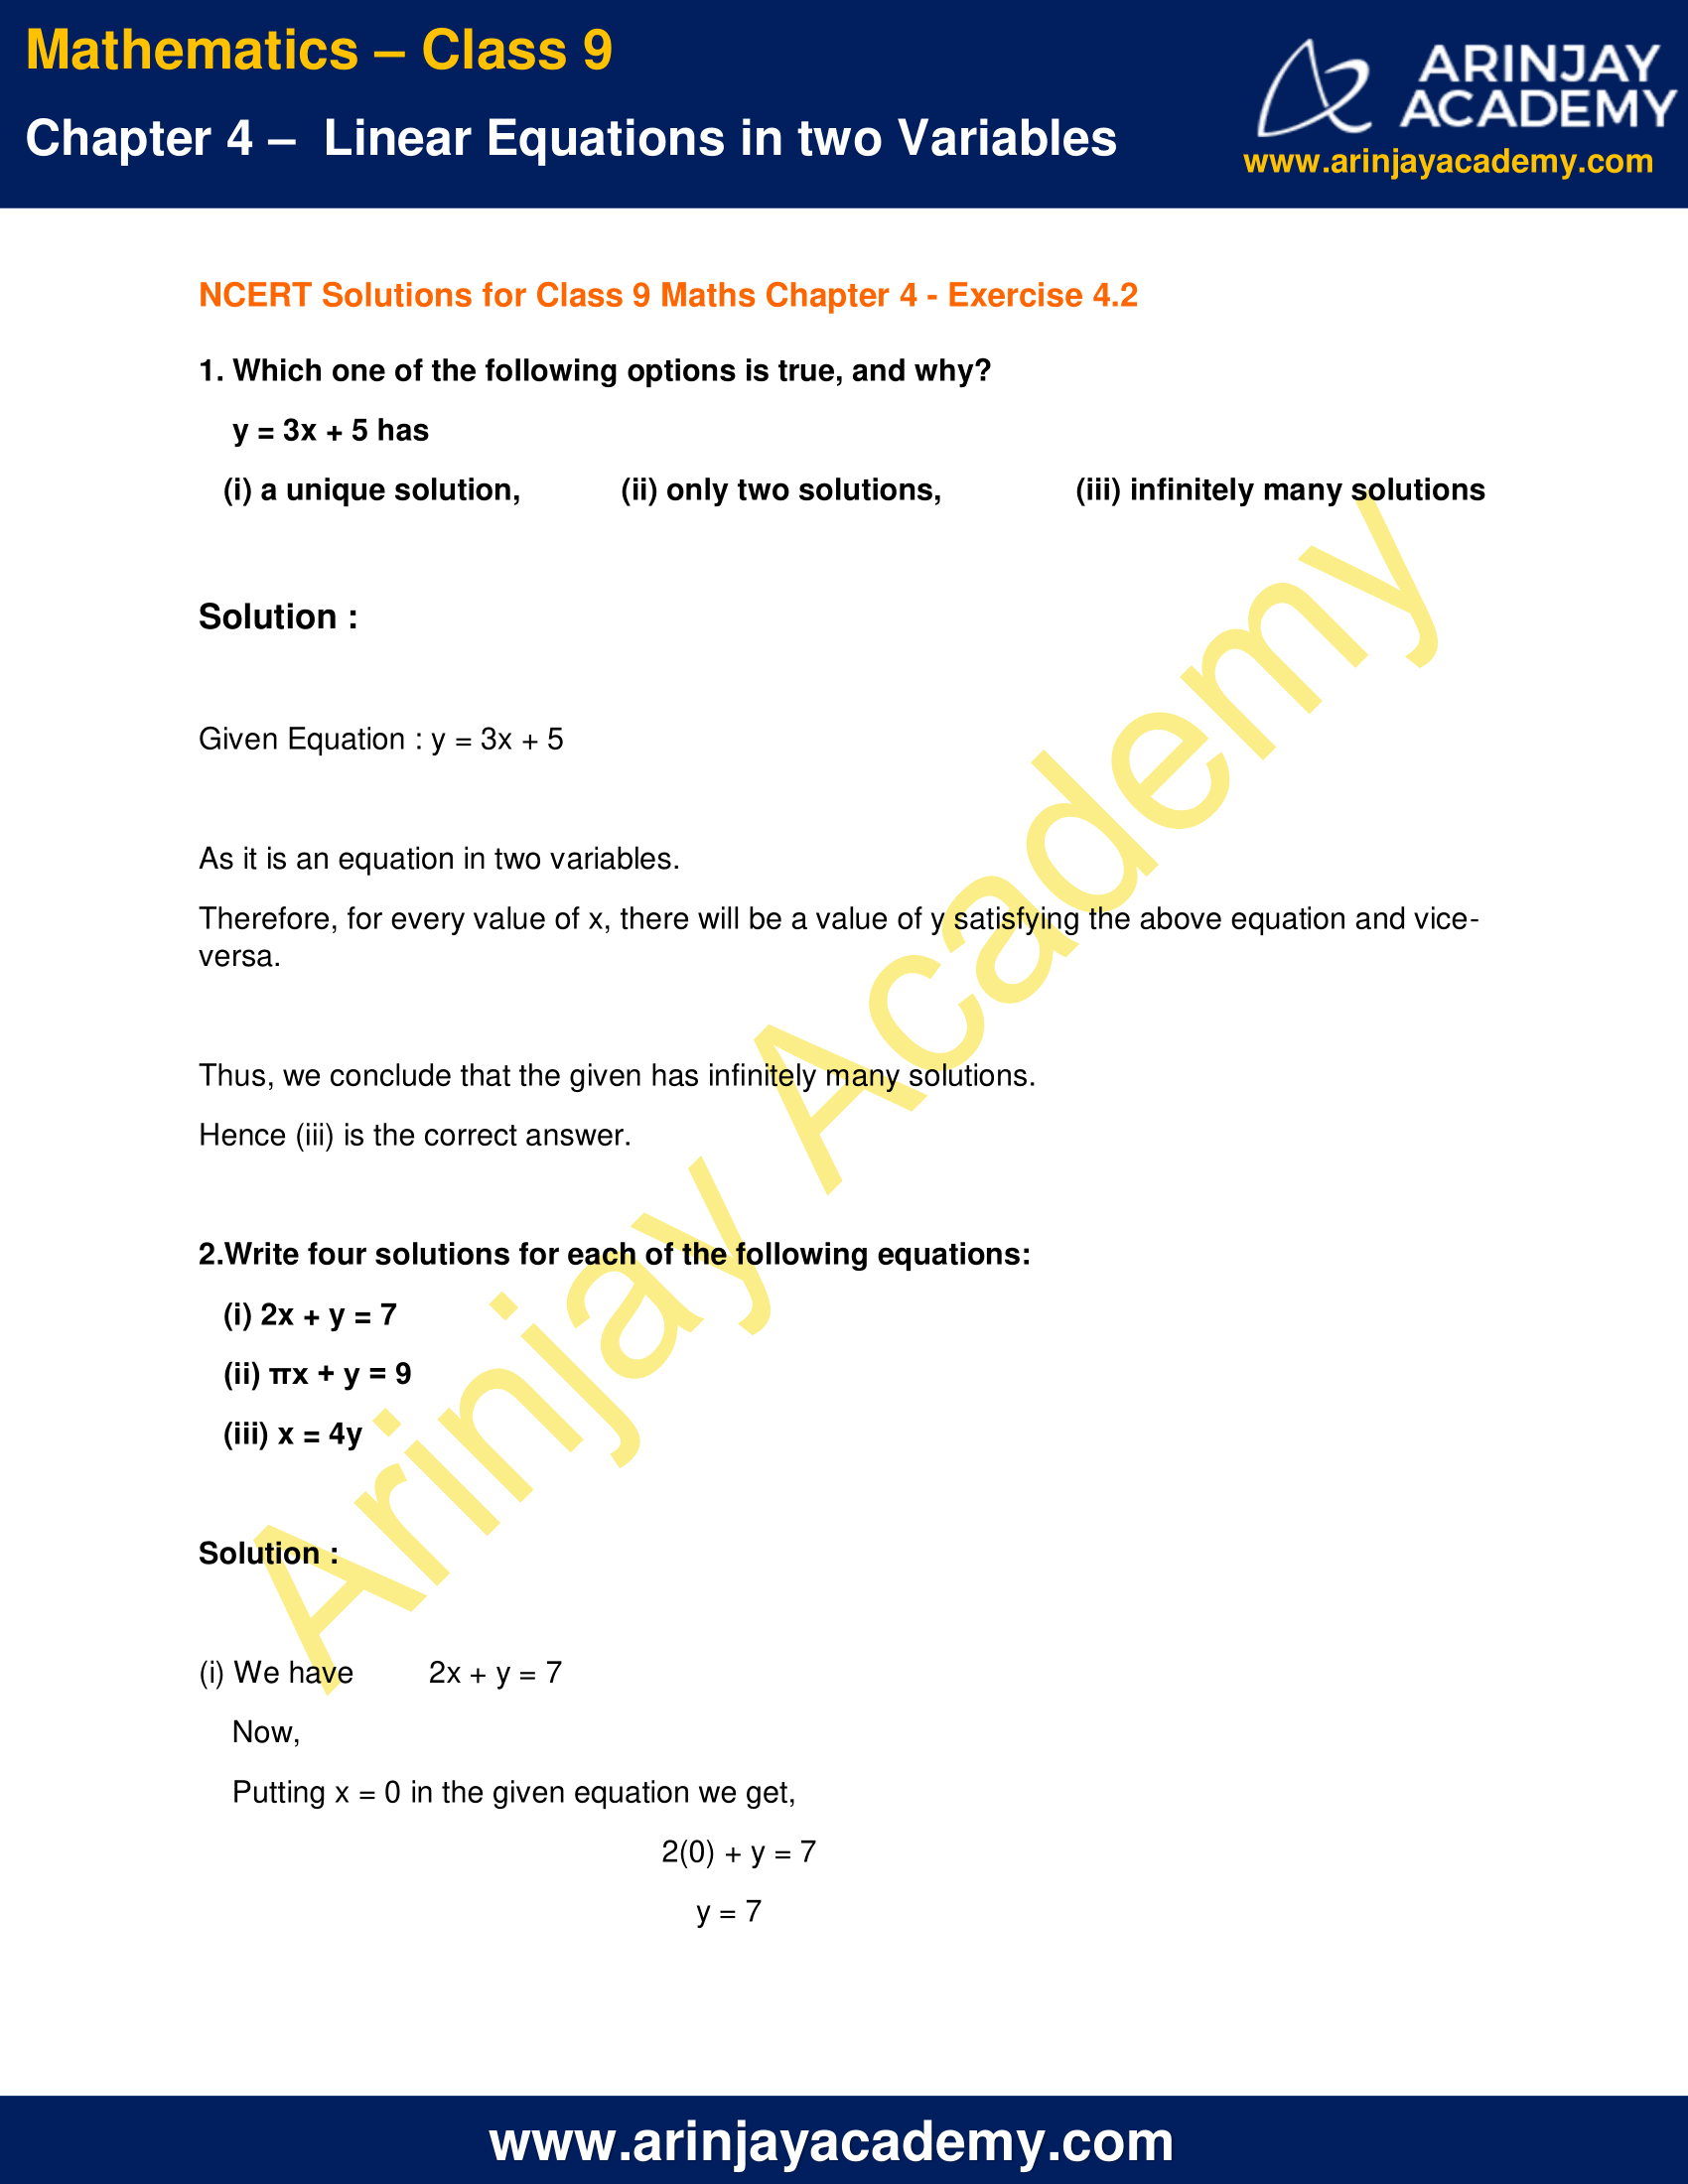 NCERT Solutions for Class 9 Maths Chapter 4 Exercise 4.2 image 1